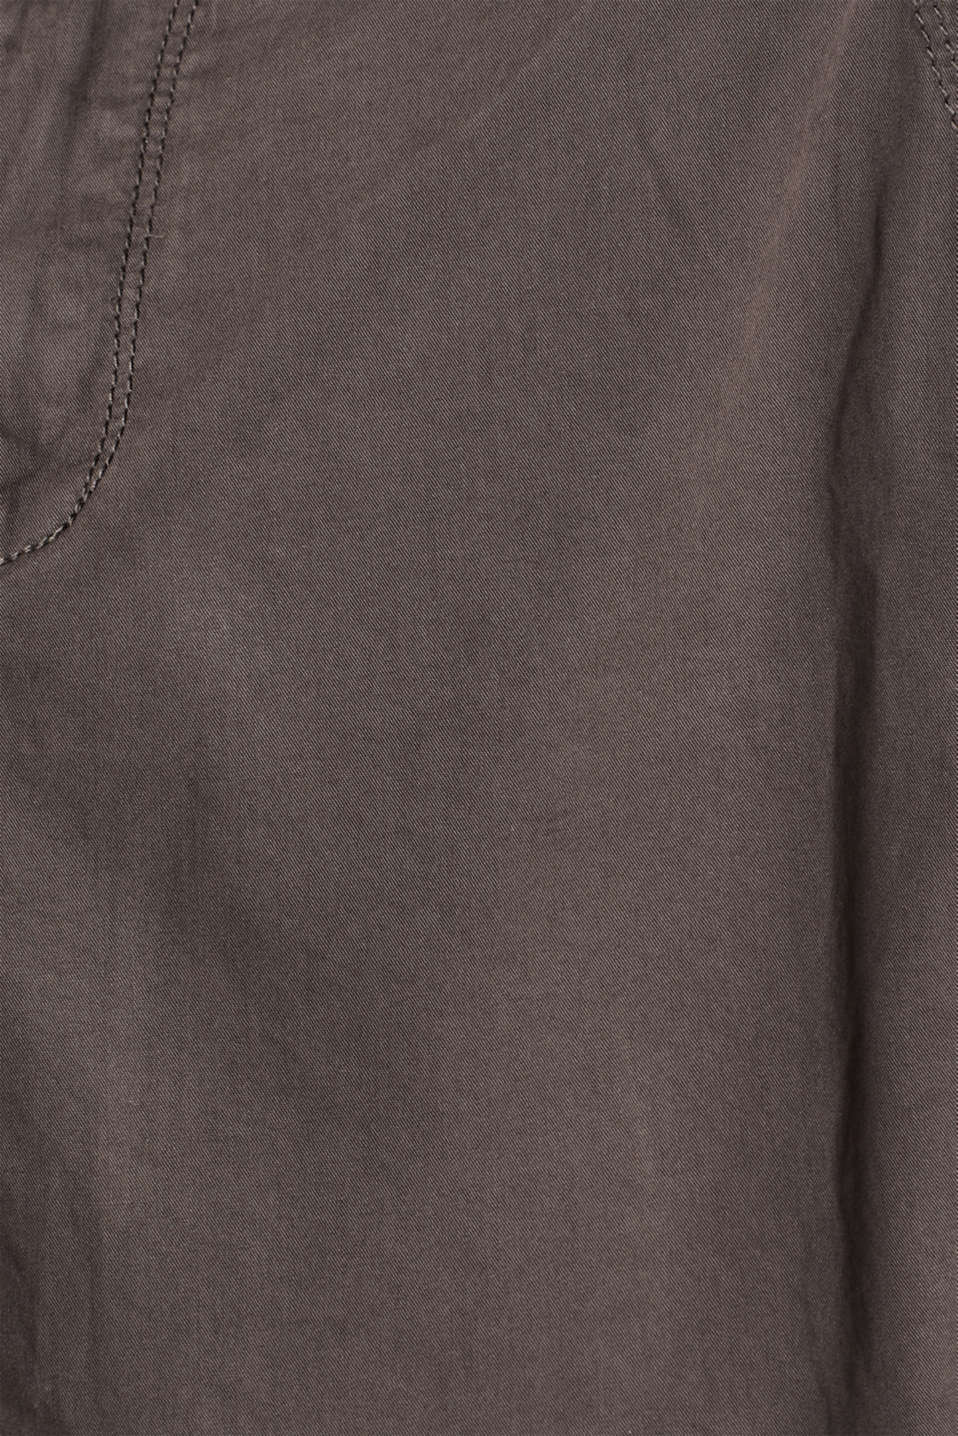 Shorts in a garment-washed look, 100% cotton, DARK GREY, detail image number 4